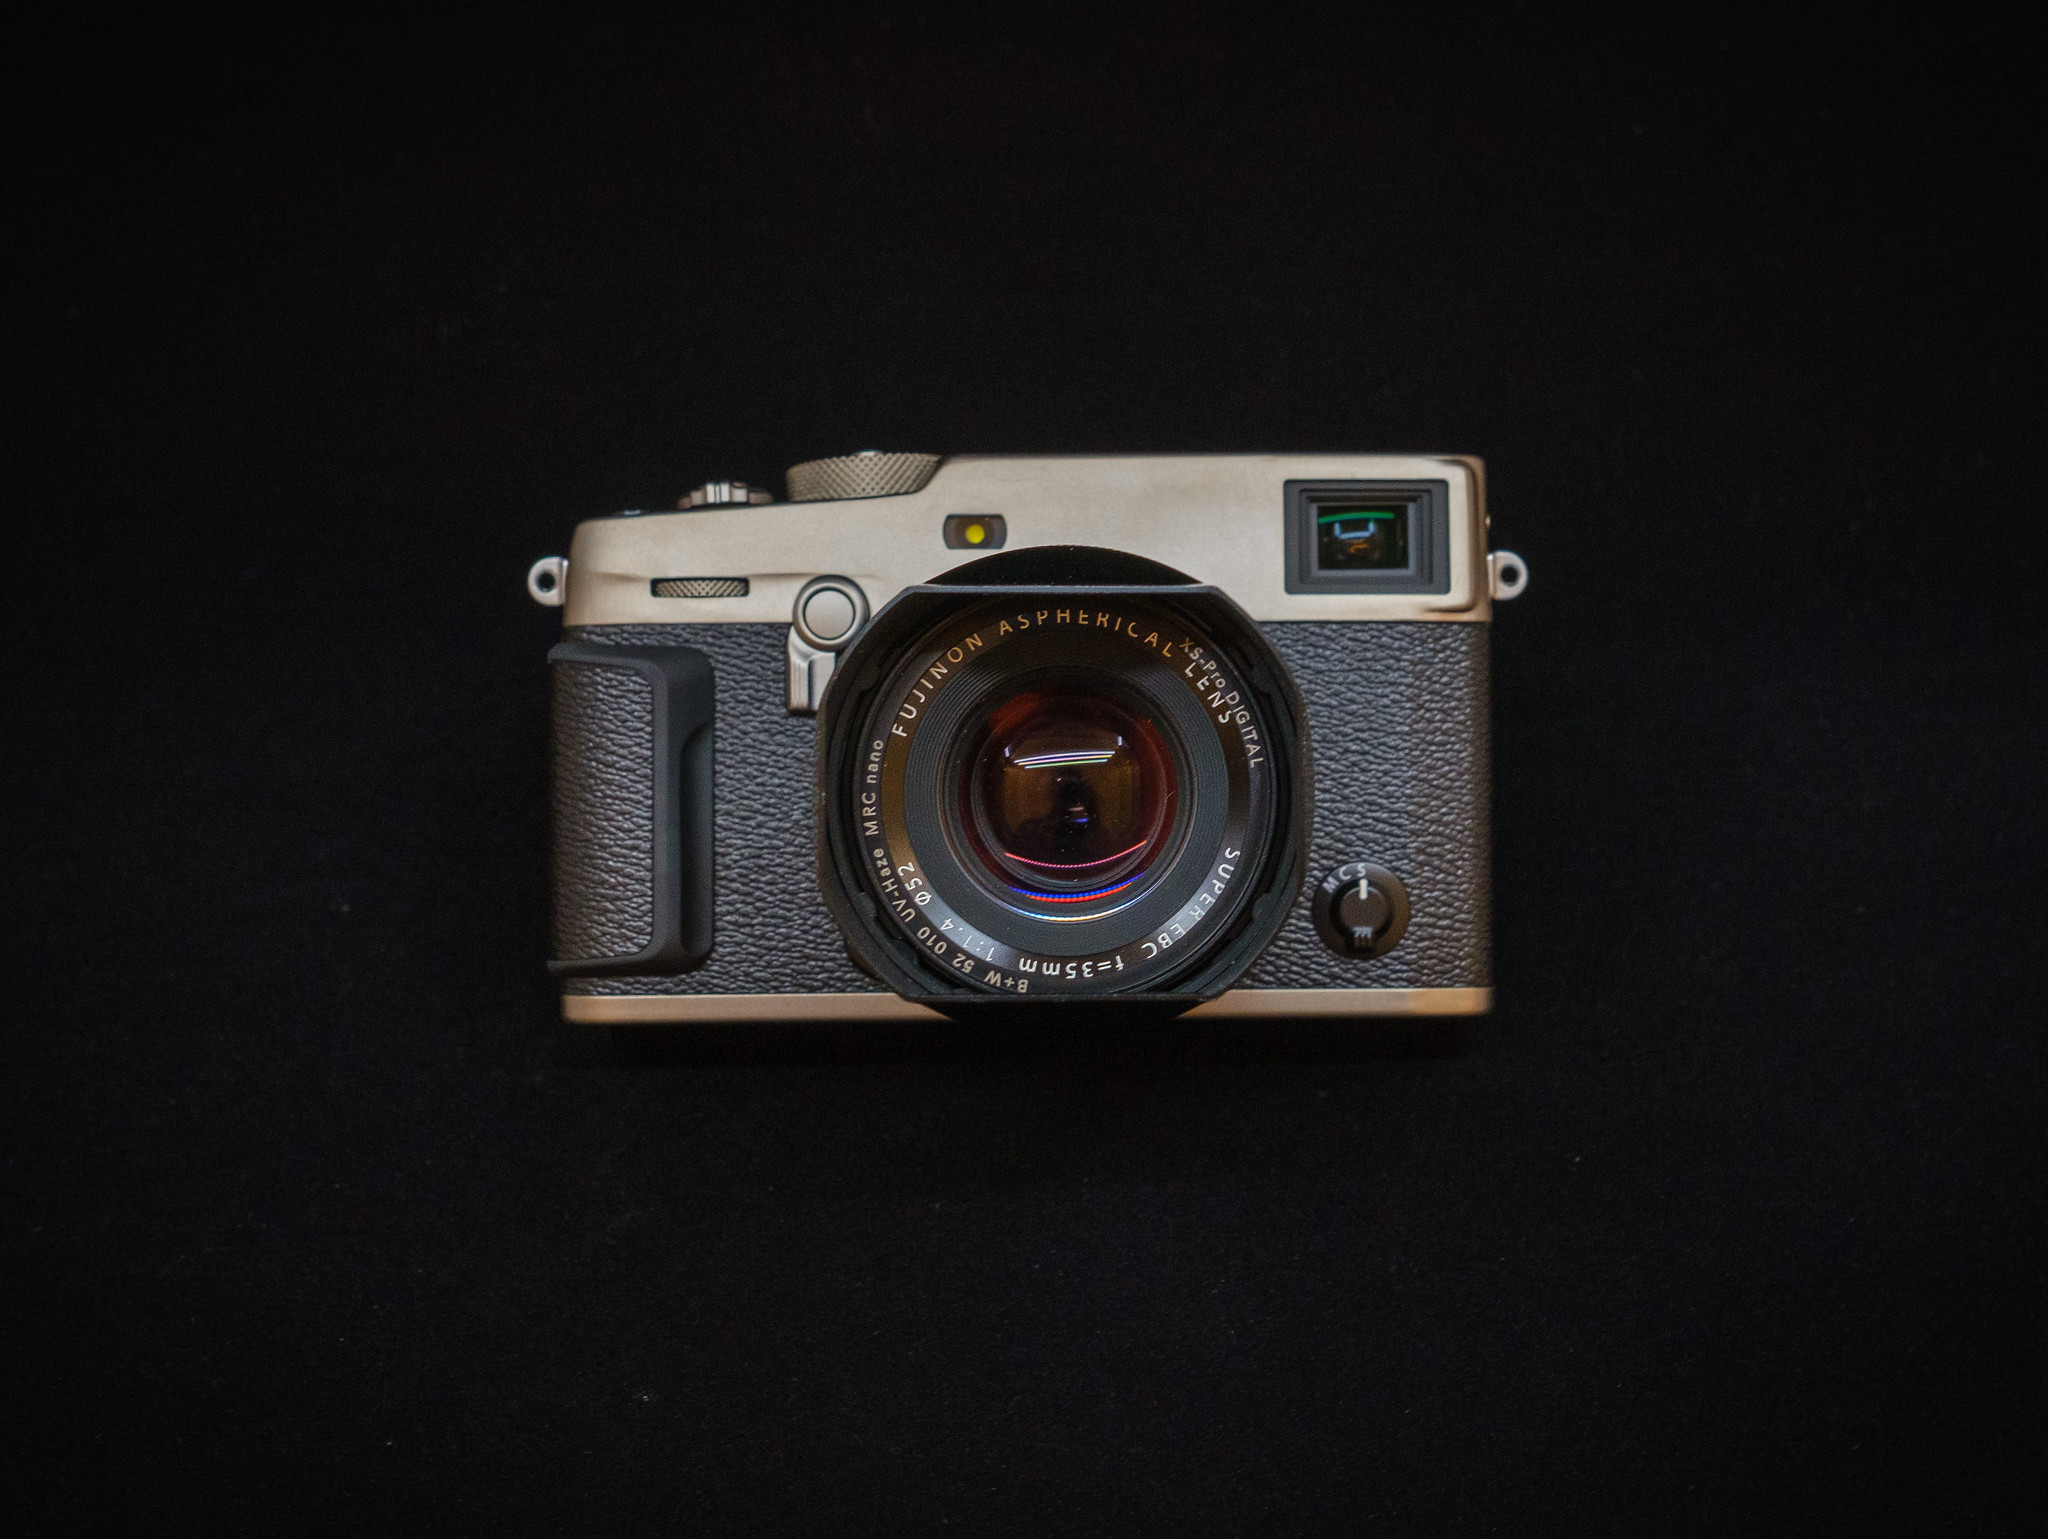 Review of the Fujifilm X-Pro3 is up!